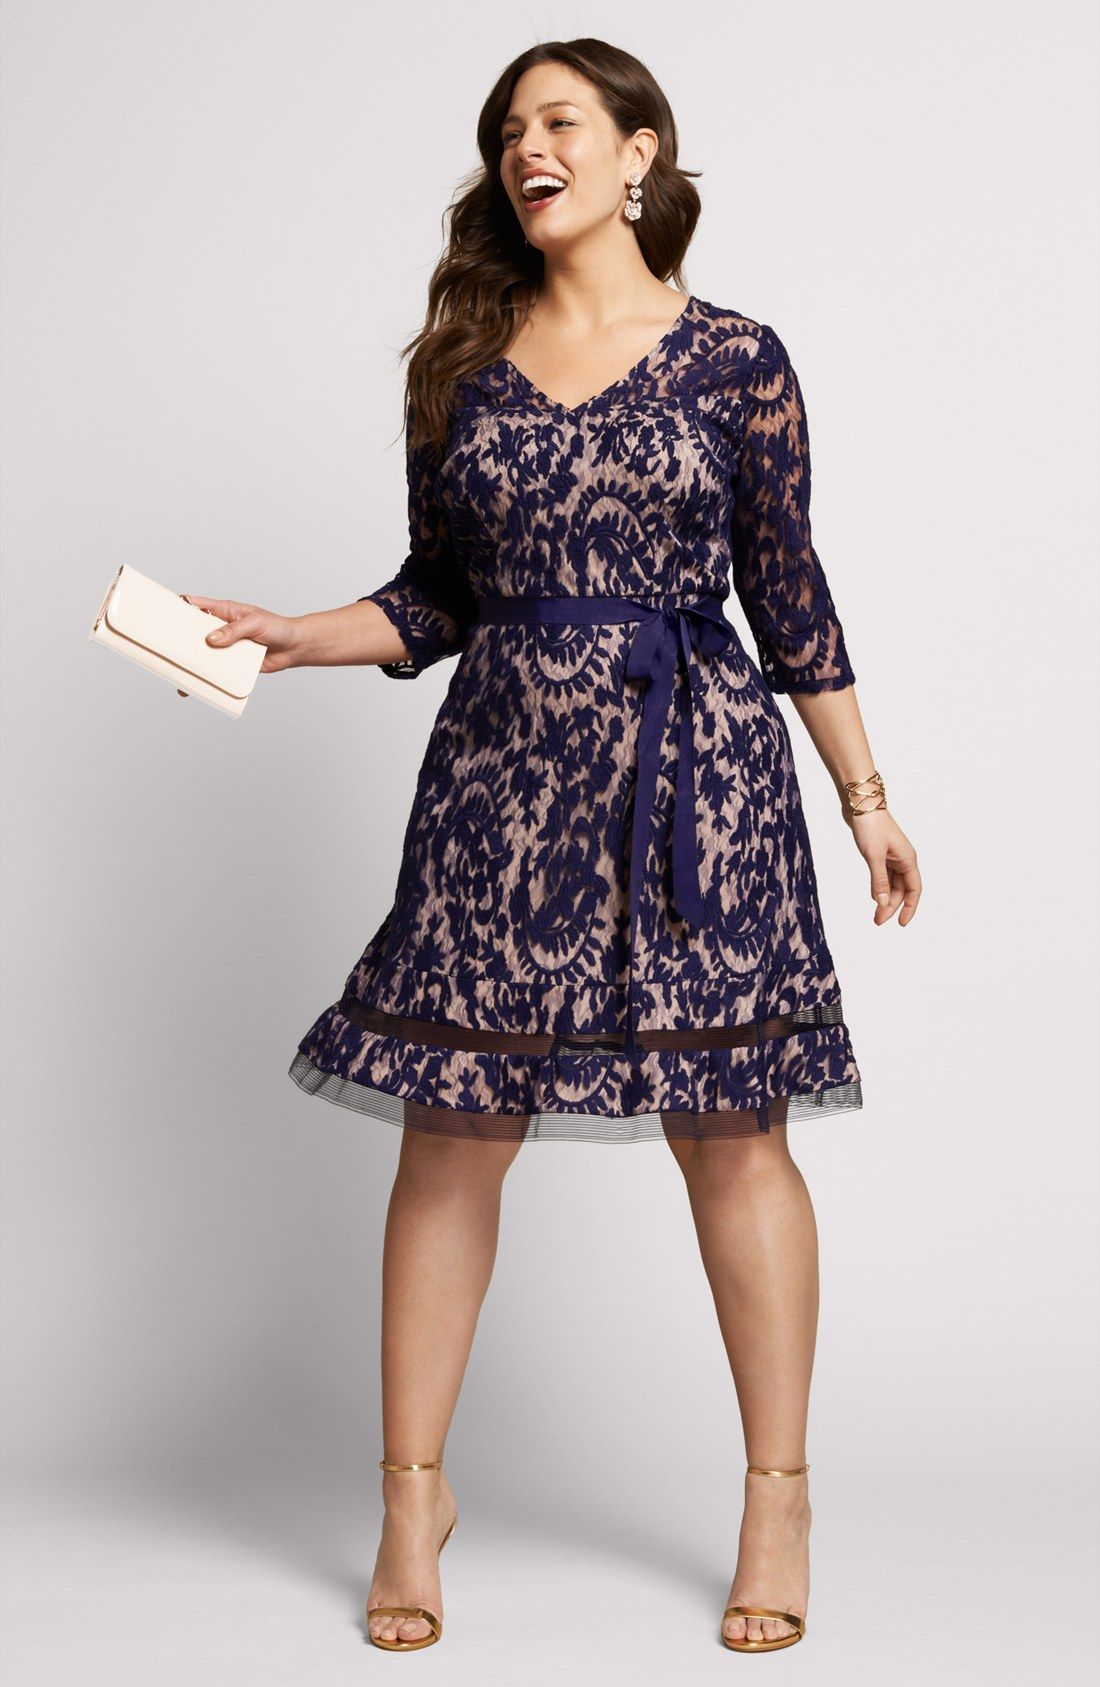 ca1e3a74 Adrianna Papell Lace Fit & Flare Dress (Plus Size) | Nordstrom ...